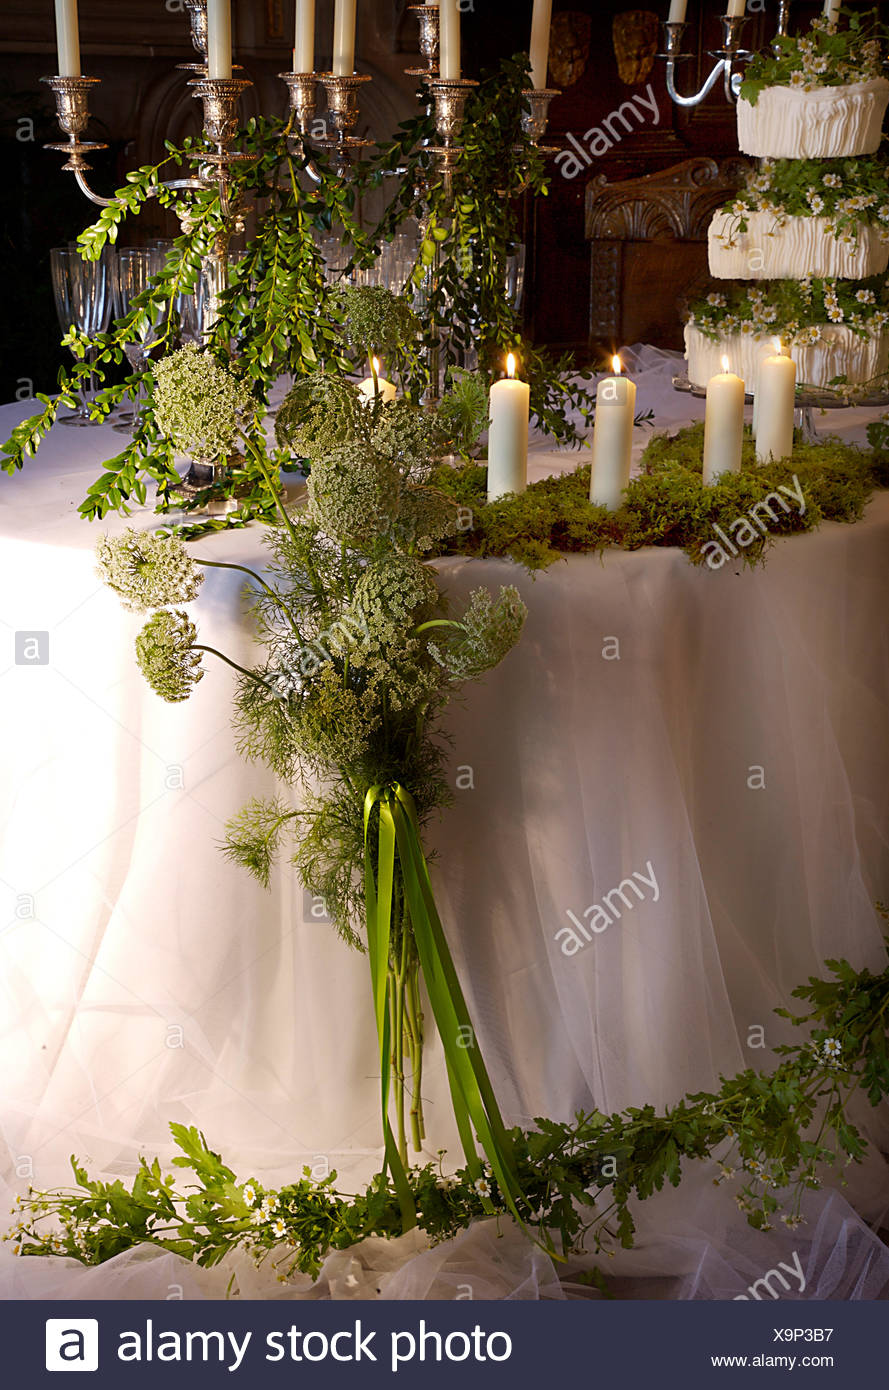 Candles and white Ammi flowers with foliage and flower garland on ...